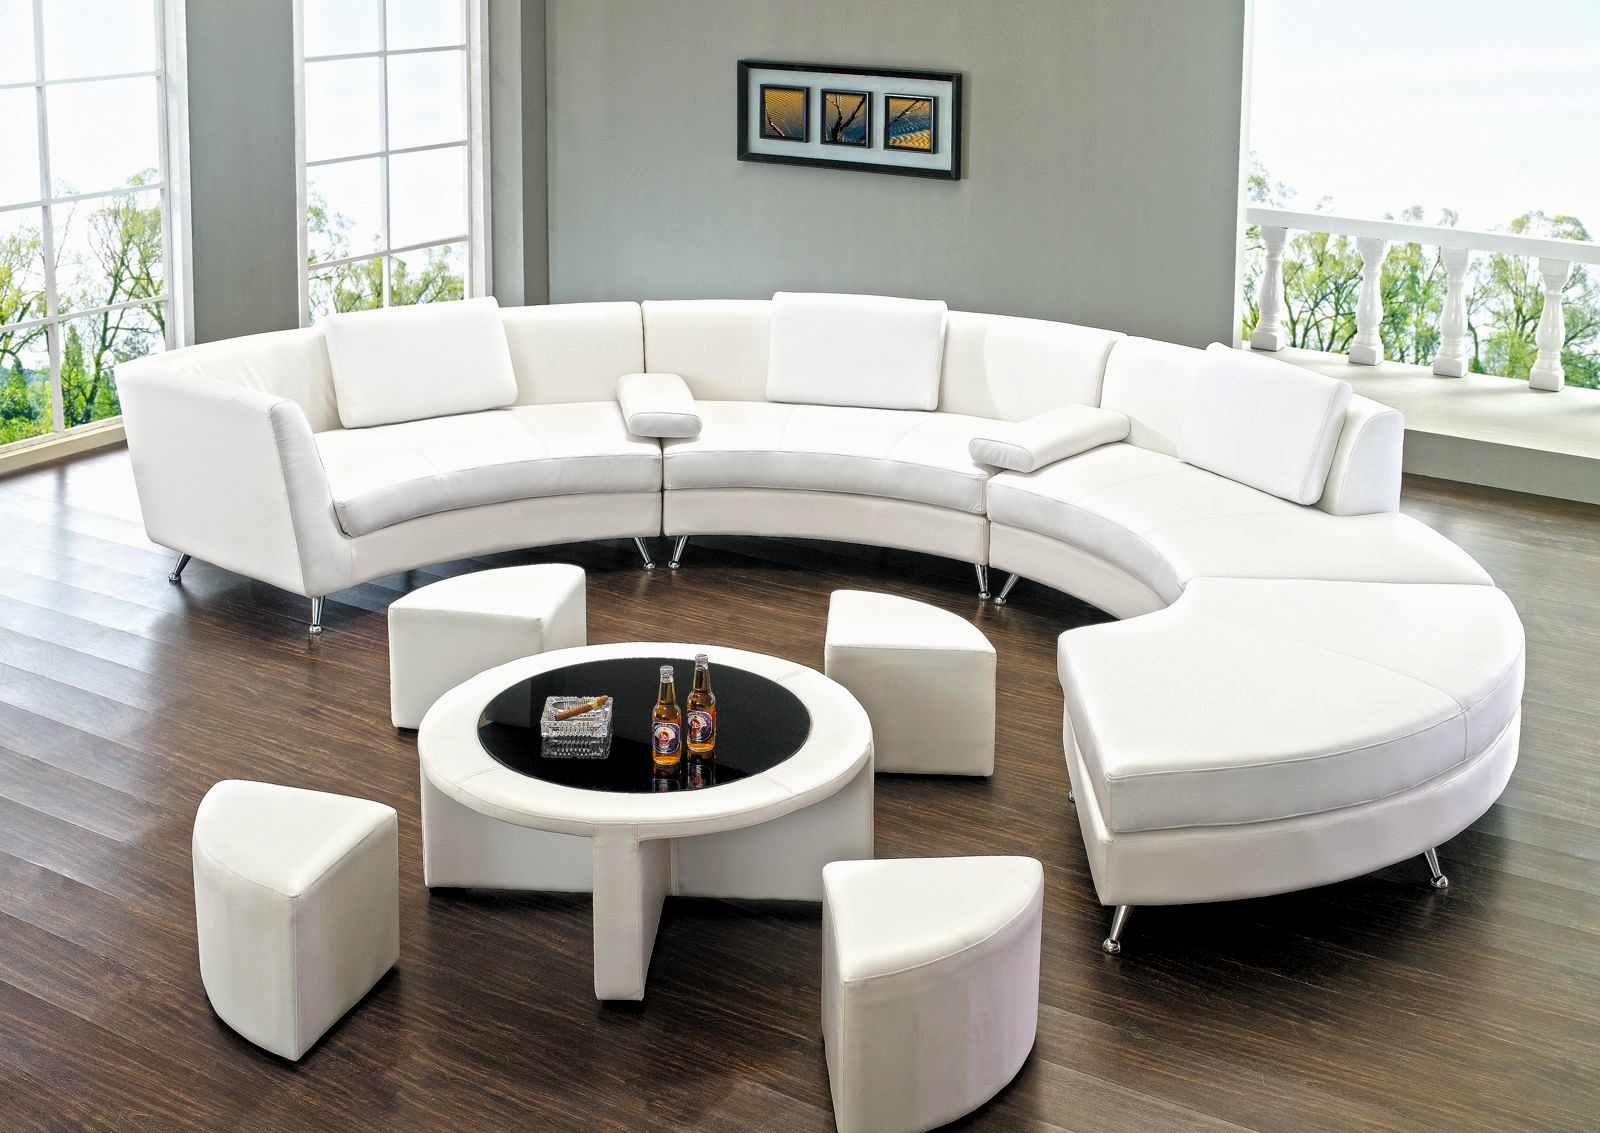 best of white sofas in living rooms pattern-Latest White sofas In Living Rooms Architecture